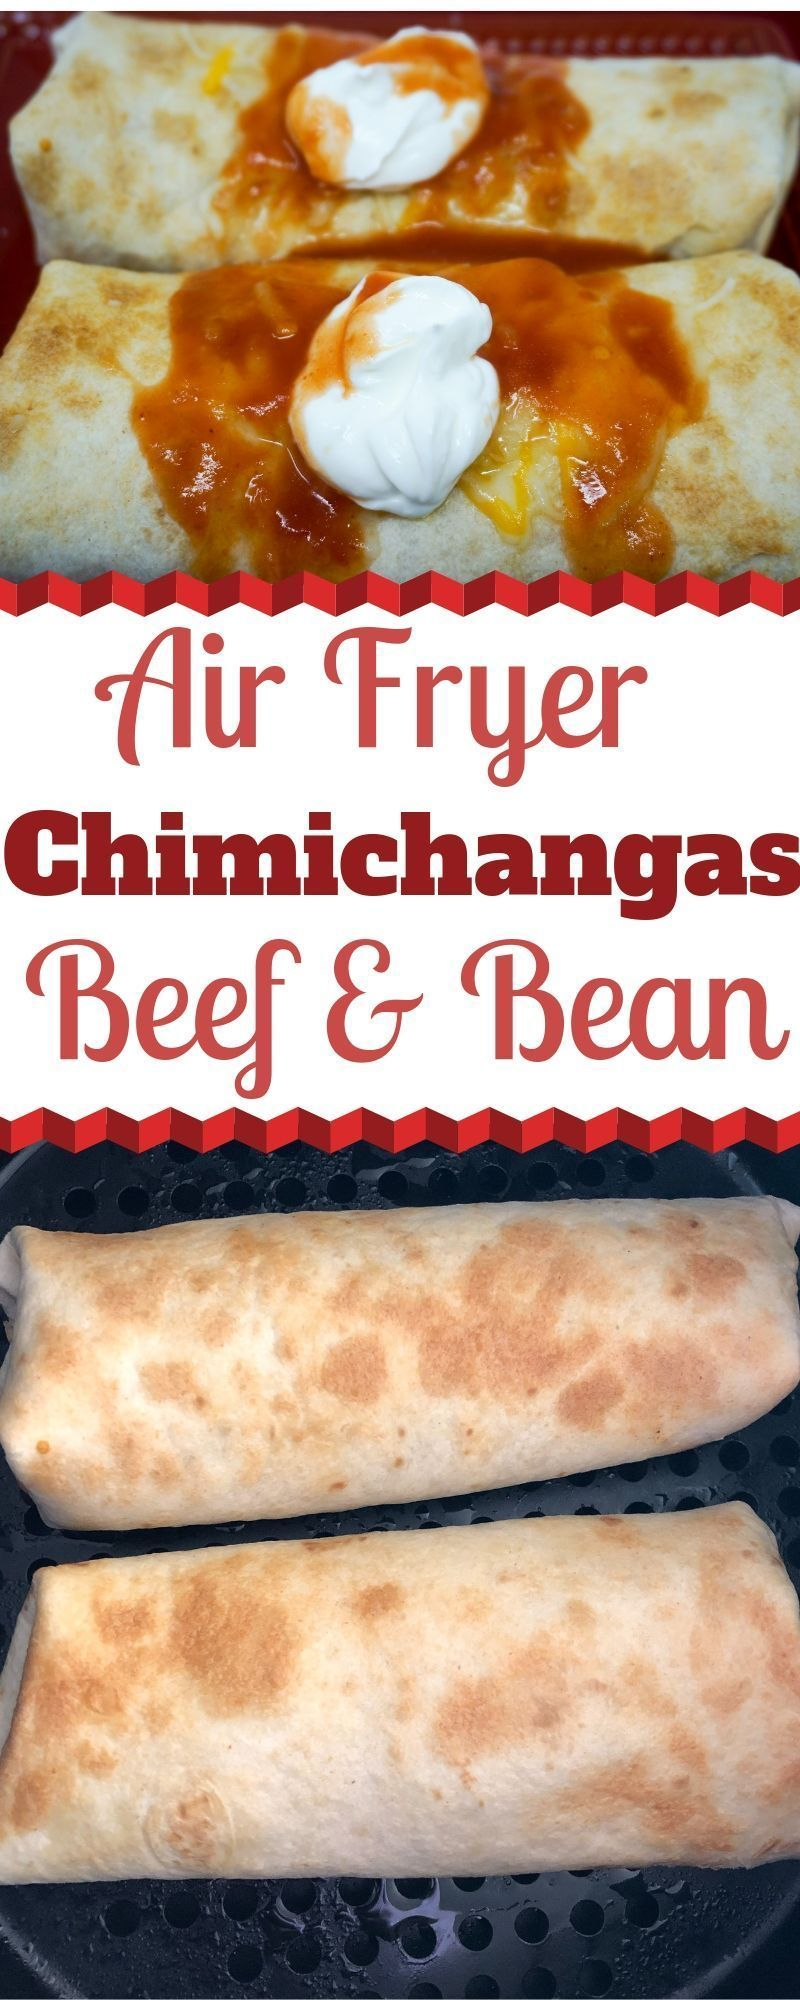 Air Fryer Beef and Bean Chimichanga #airfryerrecipes